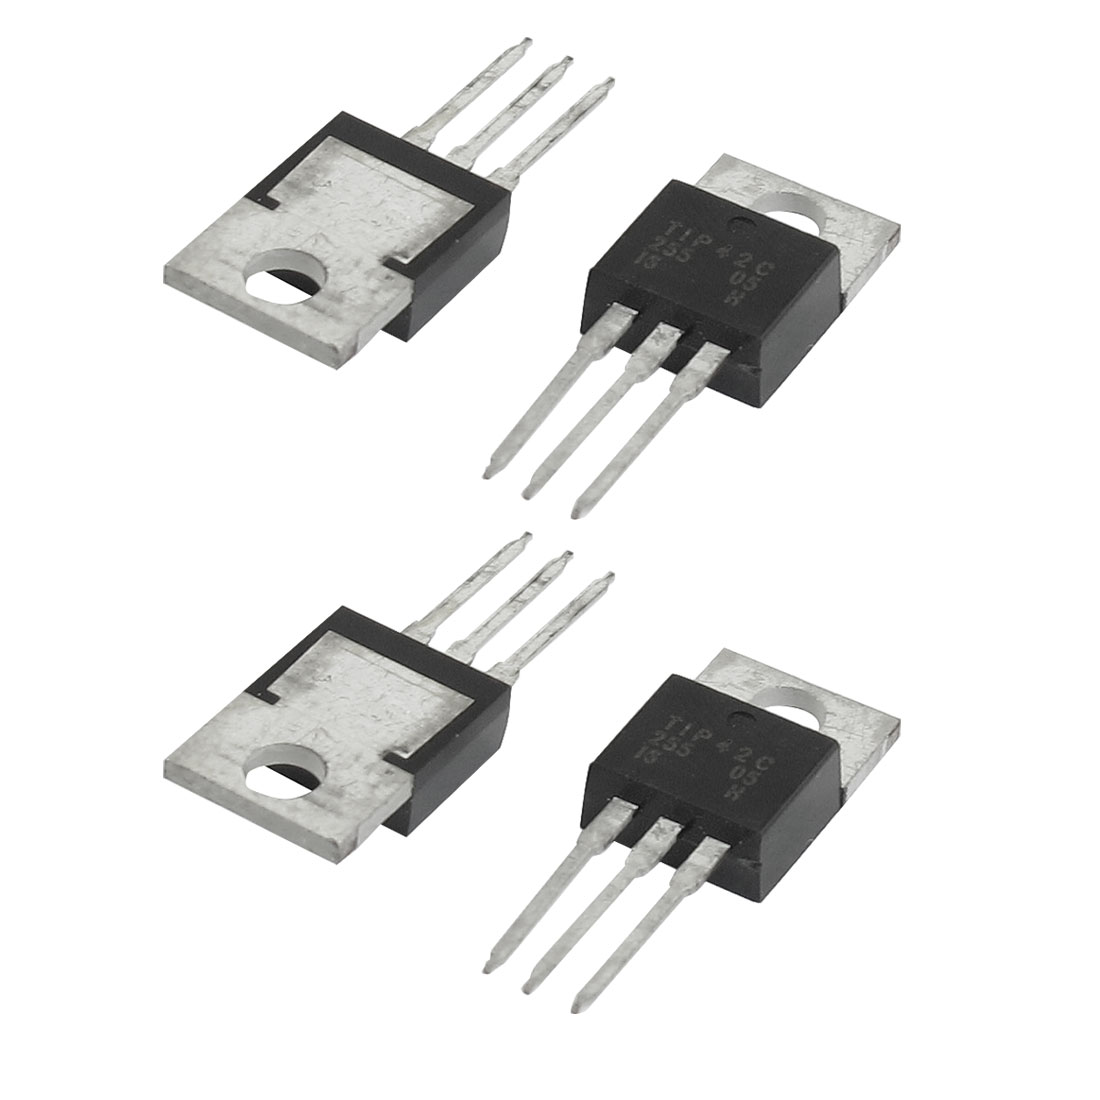 4 Pcs 100V 6A 65W Through Hole Fast Switching NPN Transistors Triodes